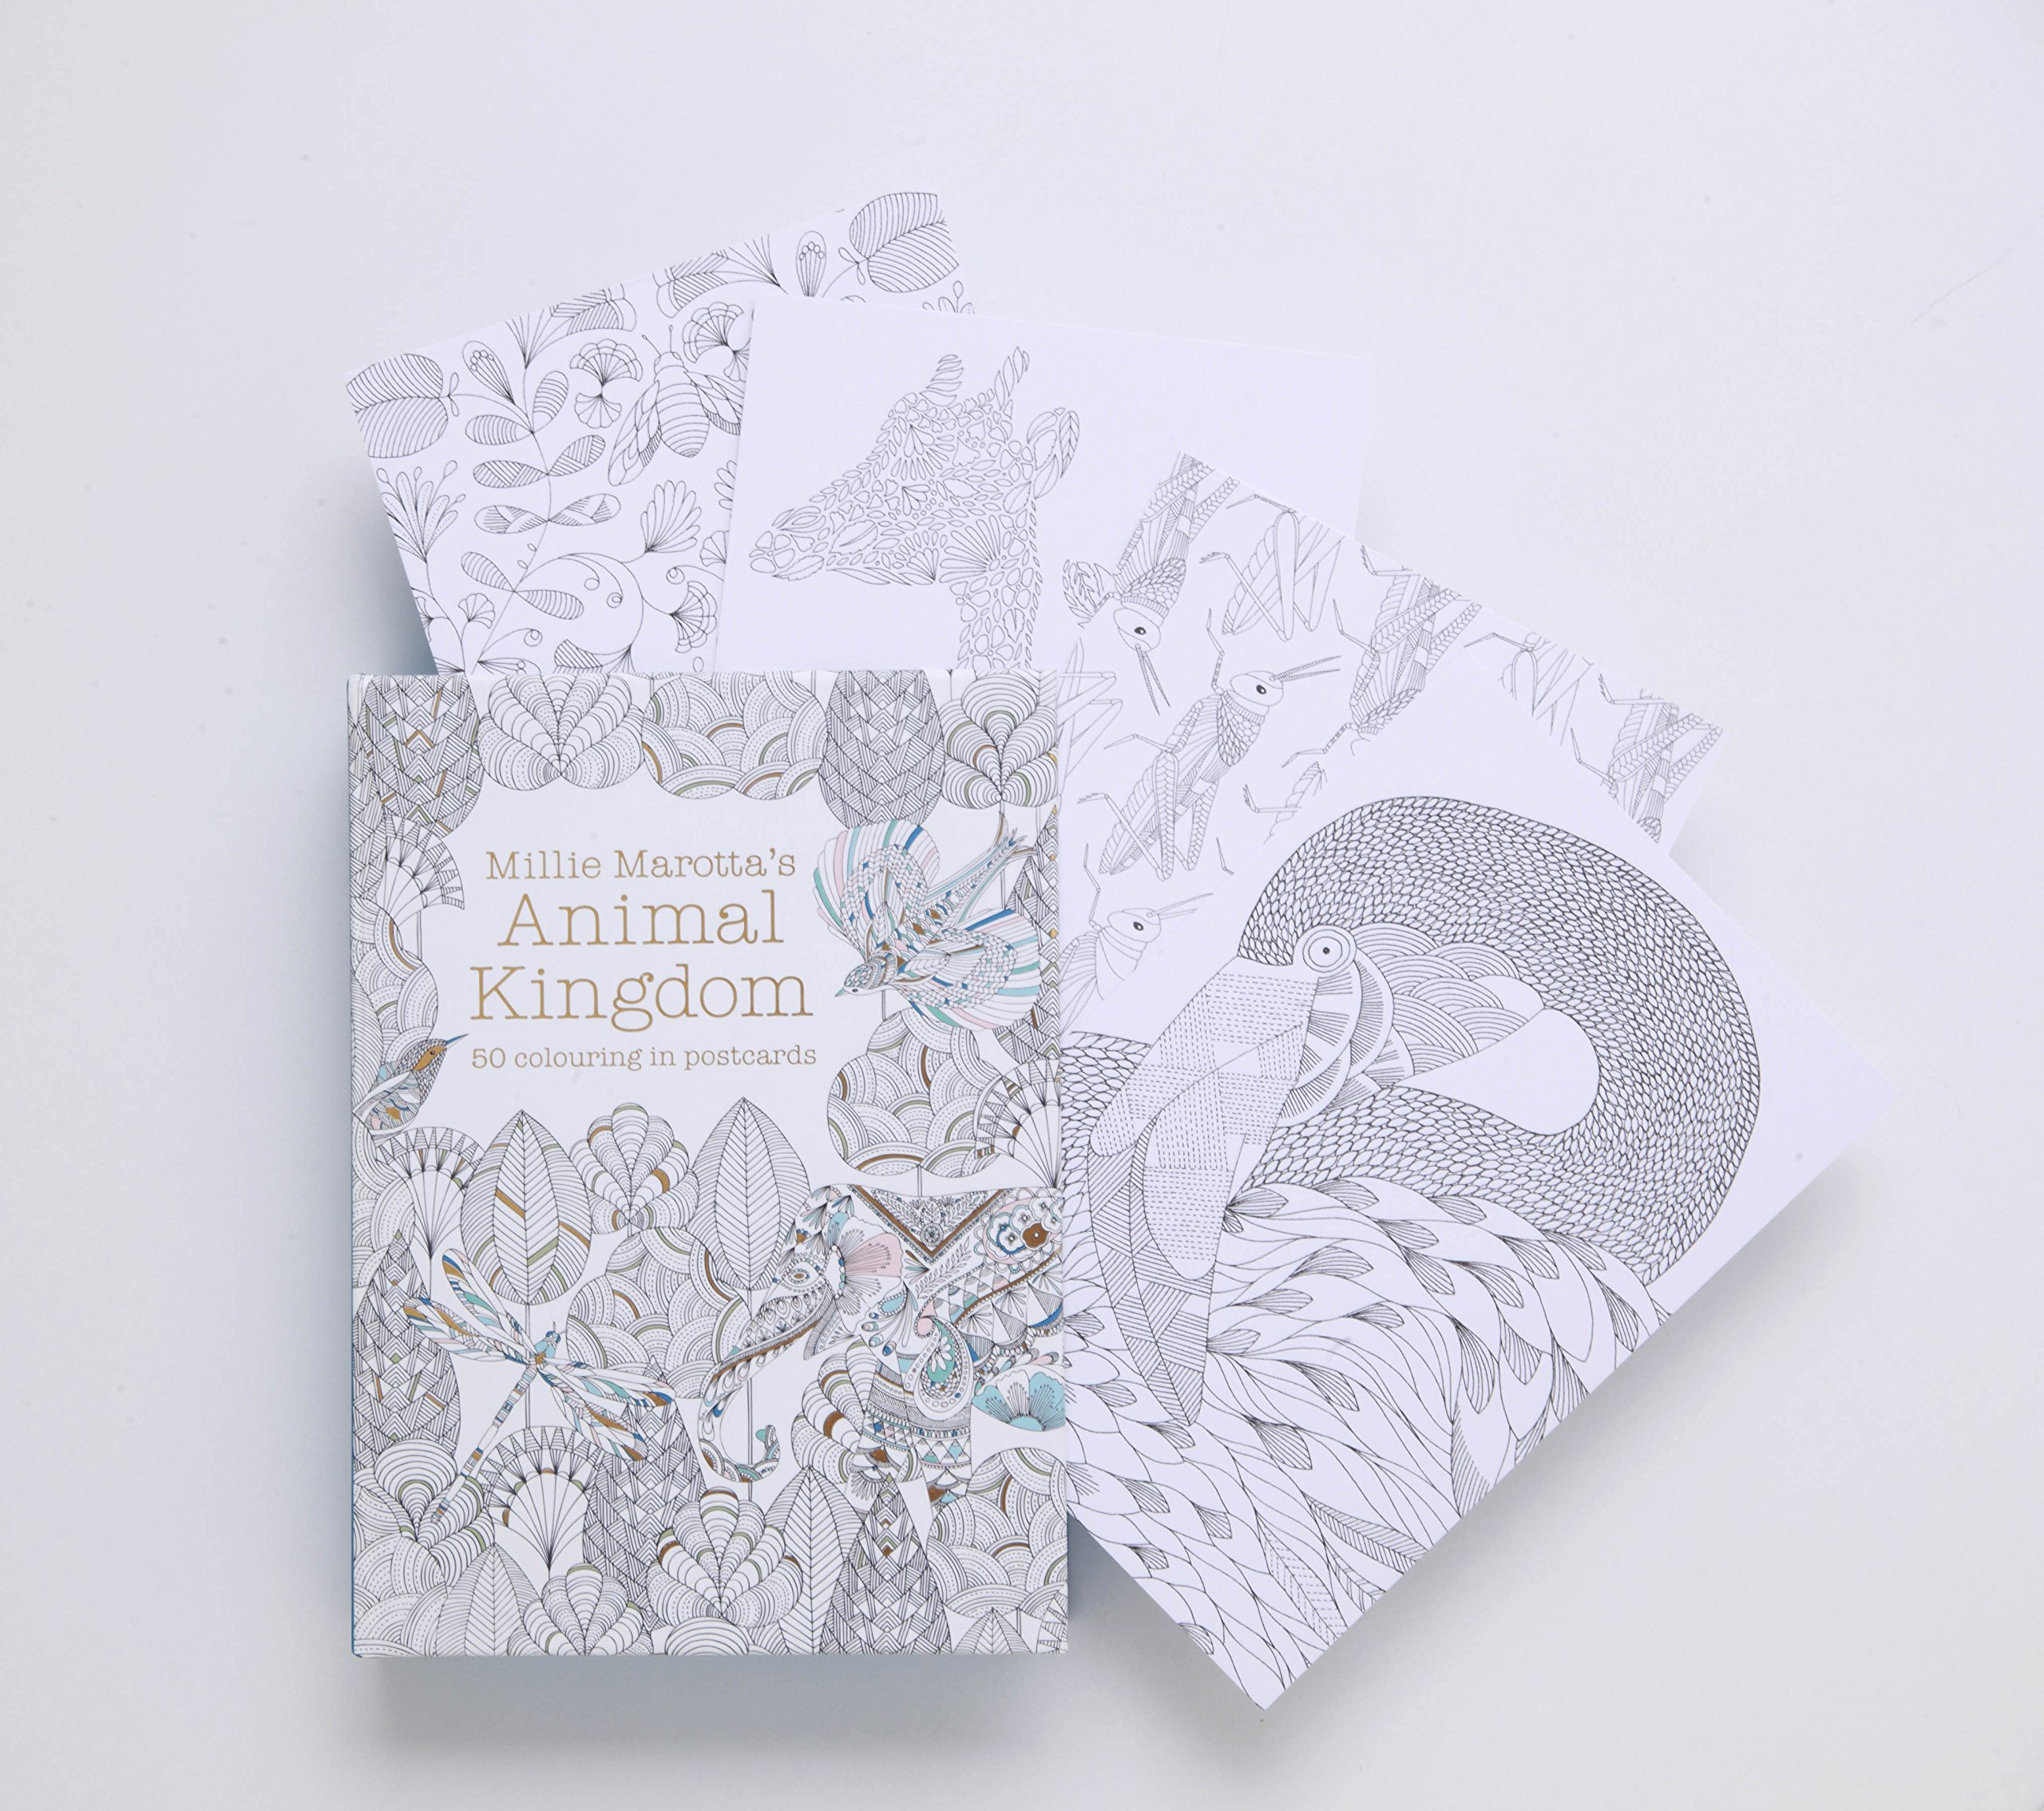 Millie Marottas Animal Kingdom Postcard Box Colouring Books Amazoncouk Marotta 9781849942904